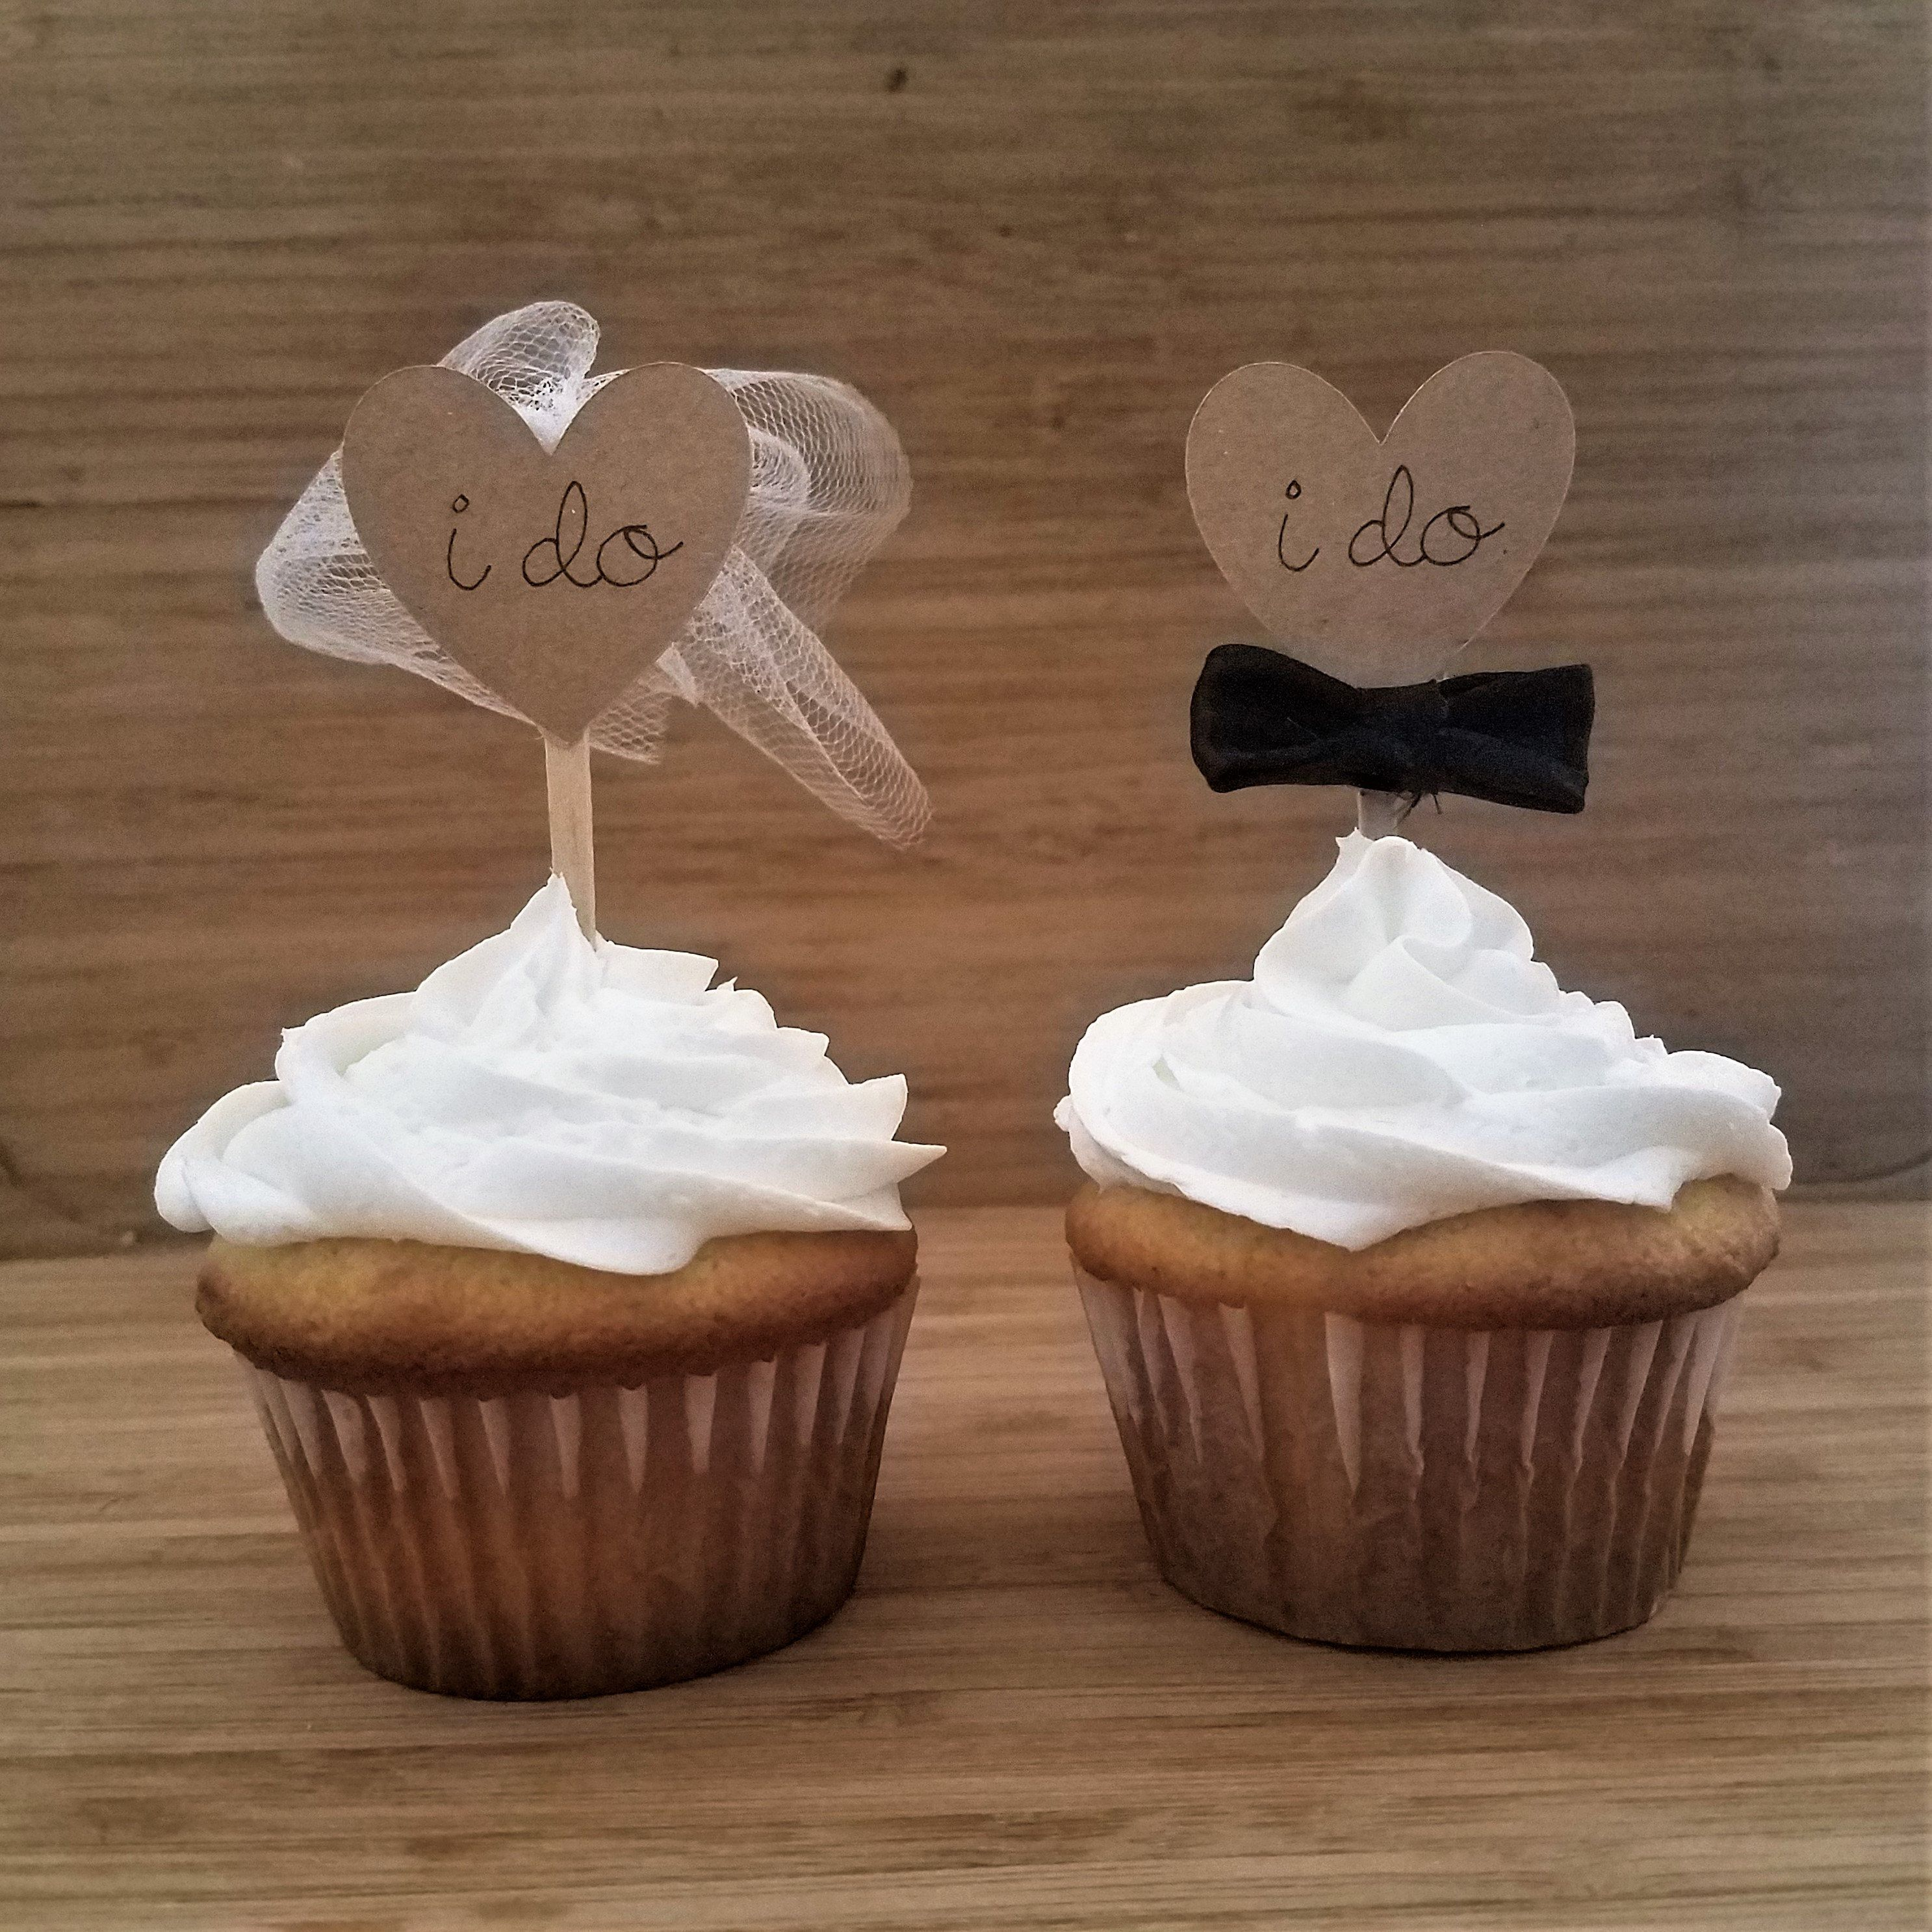 Wedding Cupcake Toppers I Do Cupcake Toppers Bridal Shower Etsy Wedding Cupcake Toppers Bridal Shower Cupcakes Toppers Bridal Shower Cakes Rustic